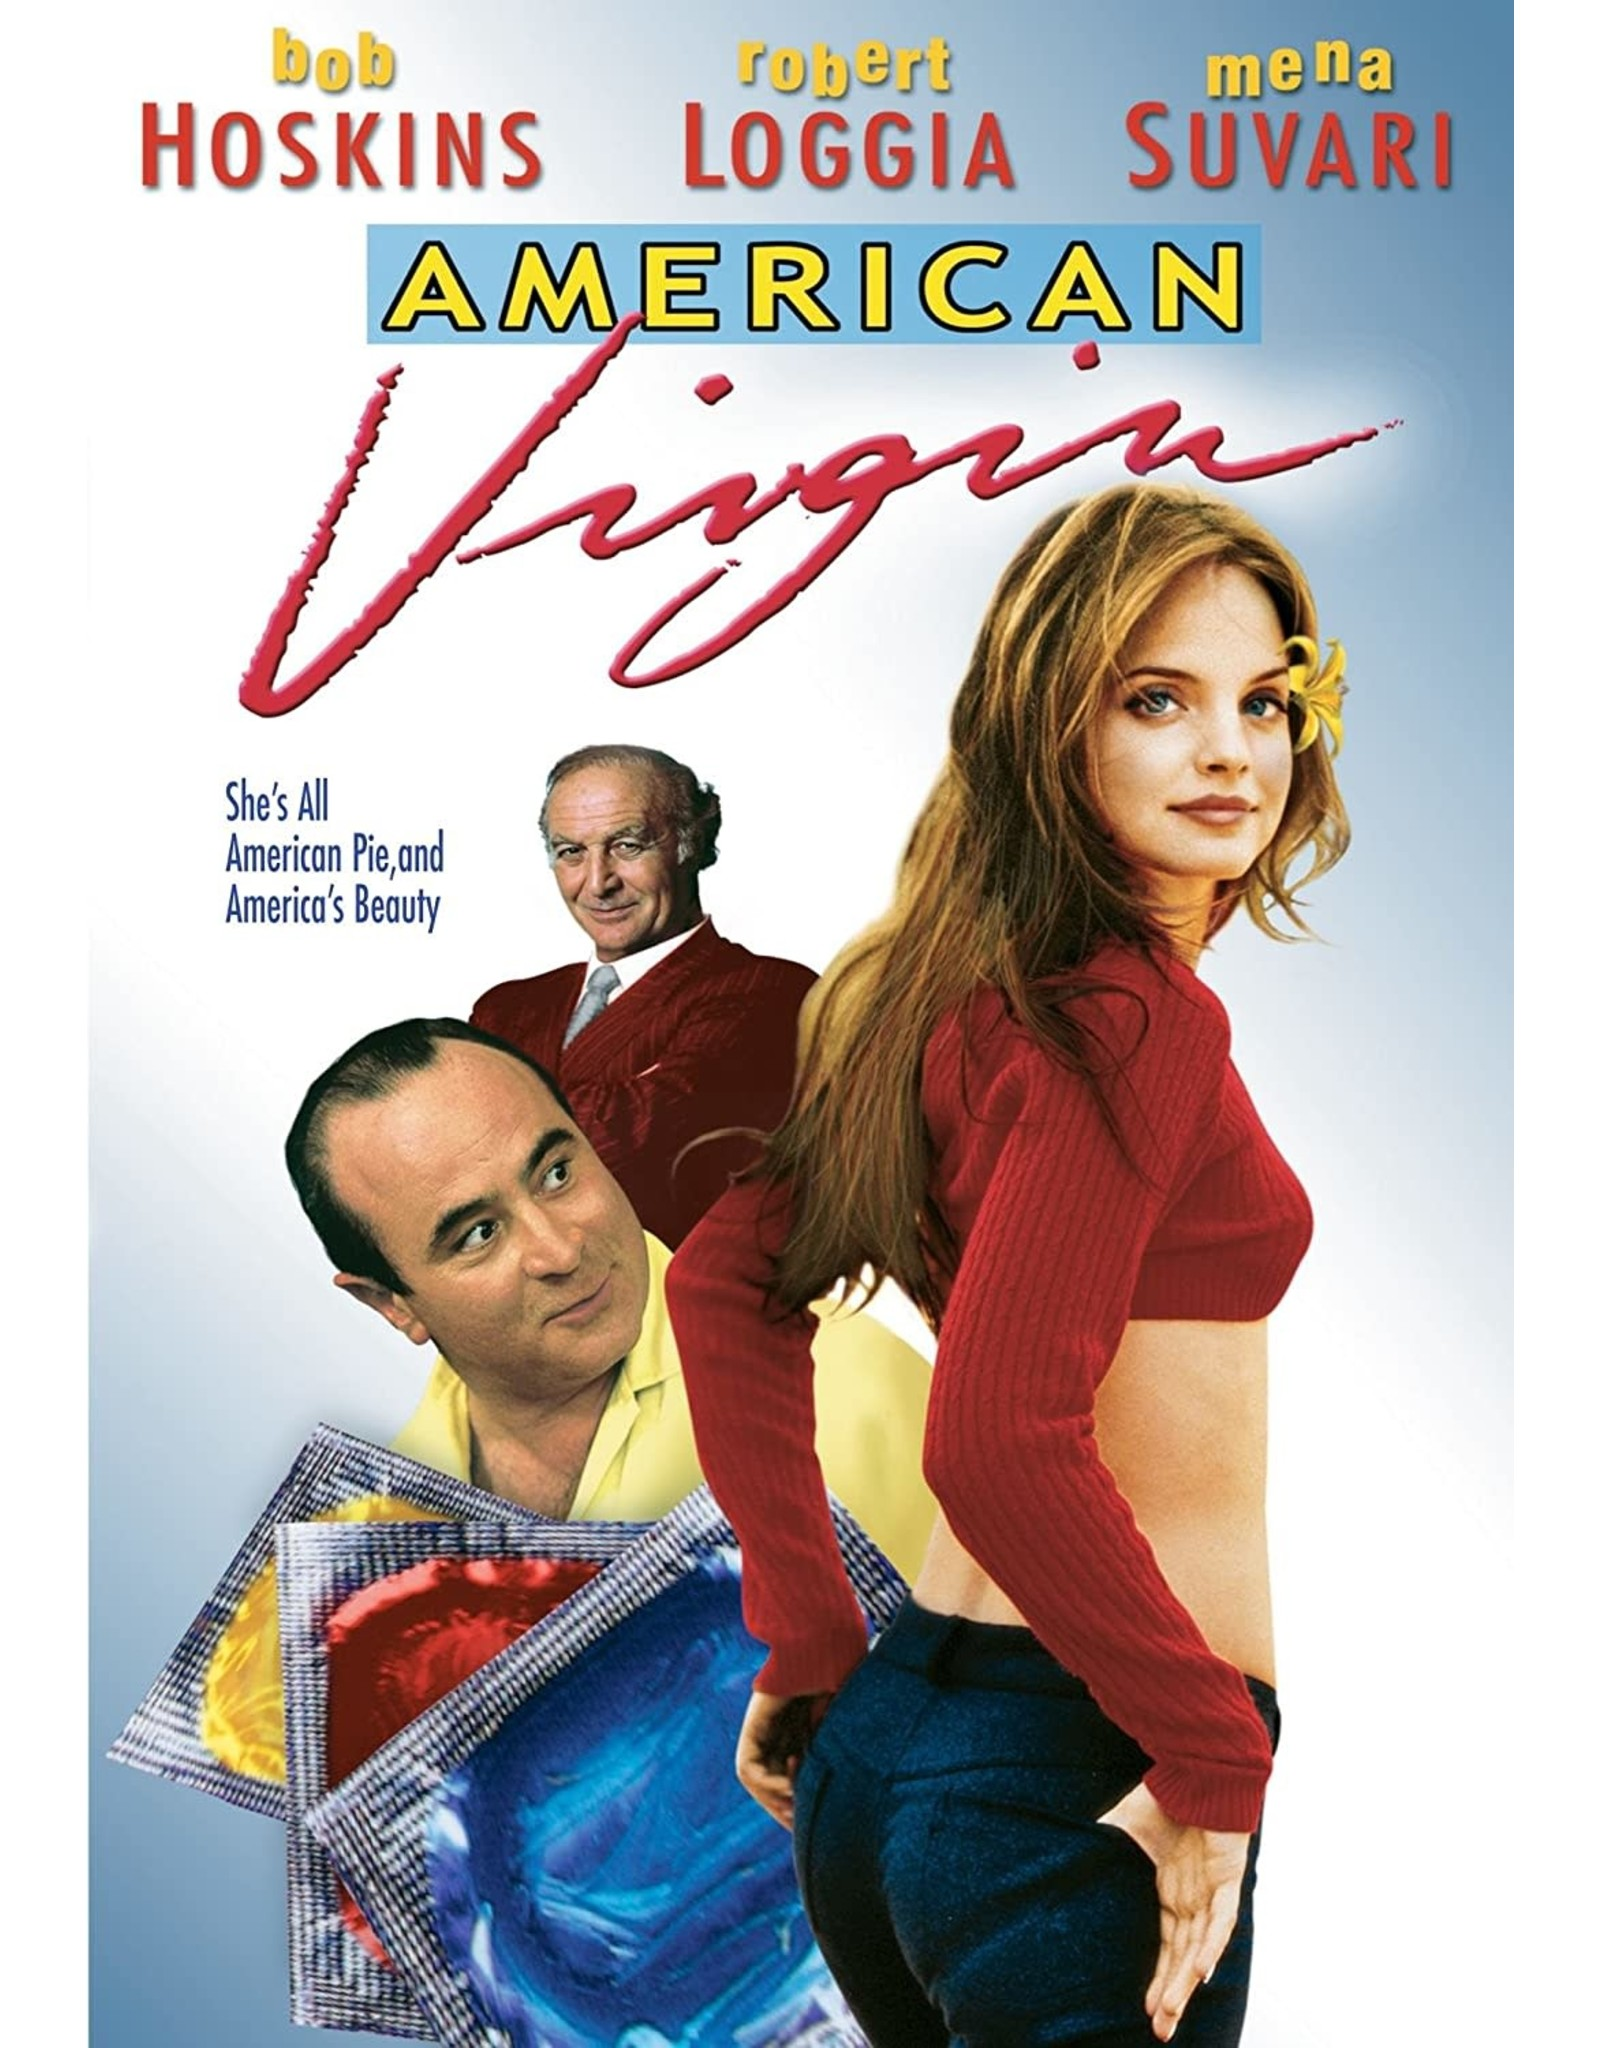 Cult and Cool American Virgin